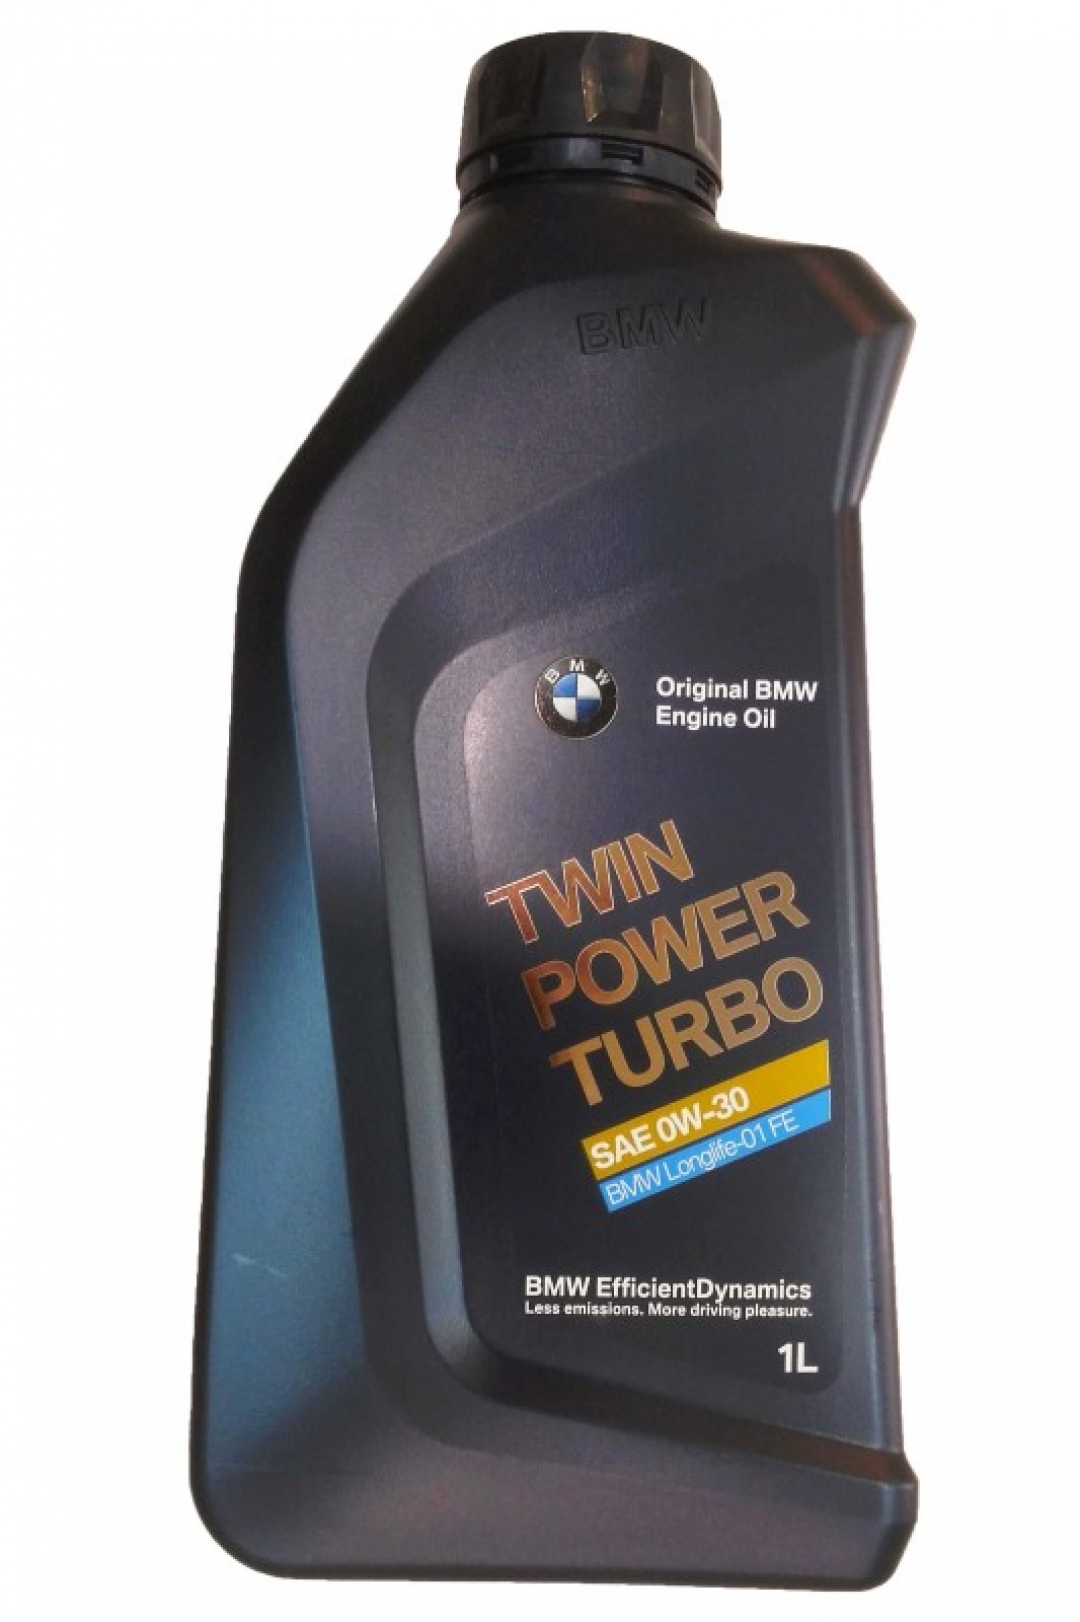 Моторное масло BMW TwinPower Turbo Longlife-01 FE 0W-30 1л - 8324